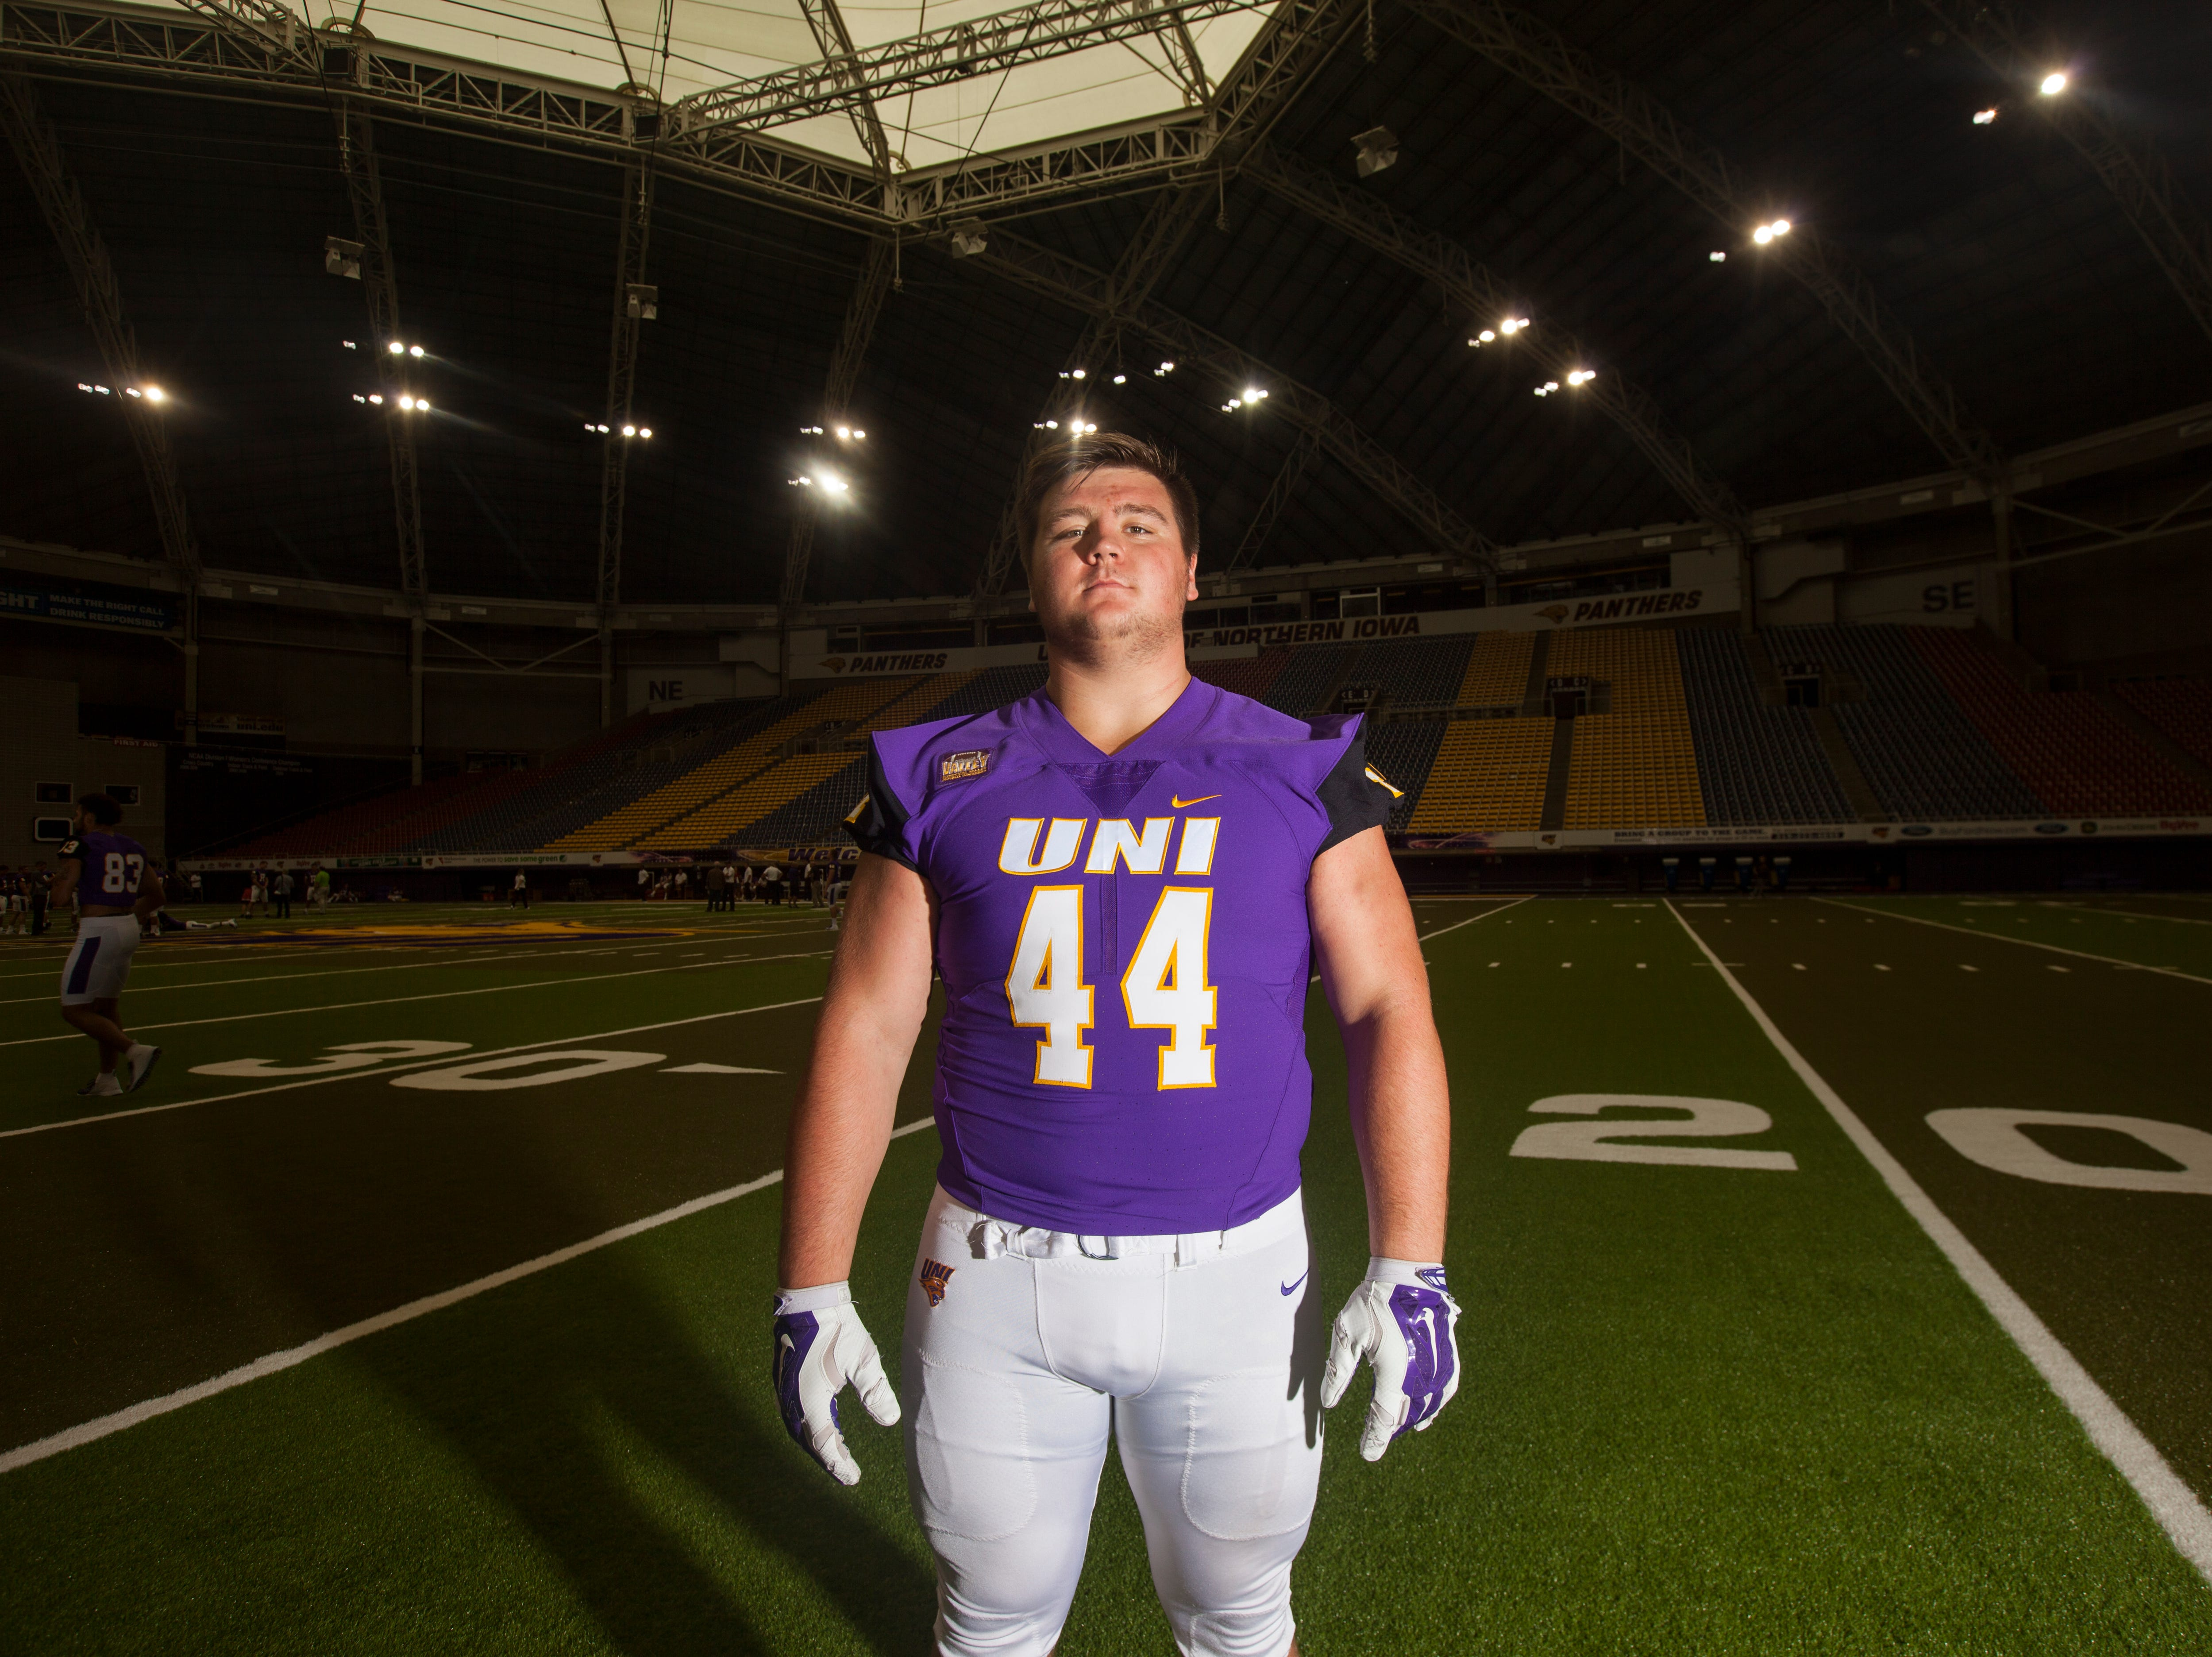 UNI defensive lineman Jared Brinkman poses for a portrait during media day on Wednesday, Aug. 8, 2018, at the UNI-Dome in Cedar Falls, Iowa.